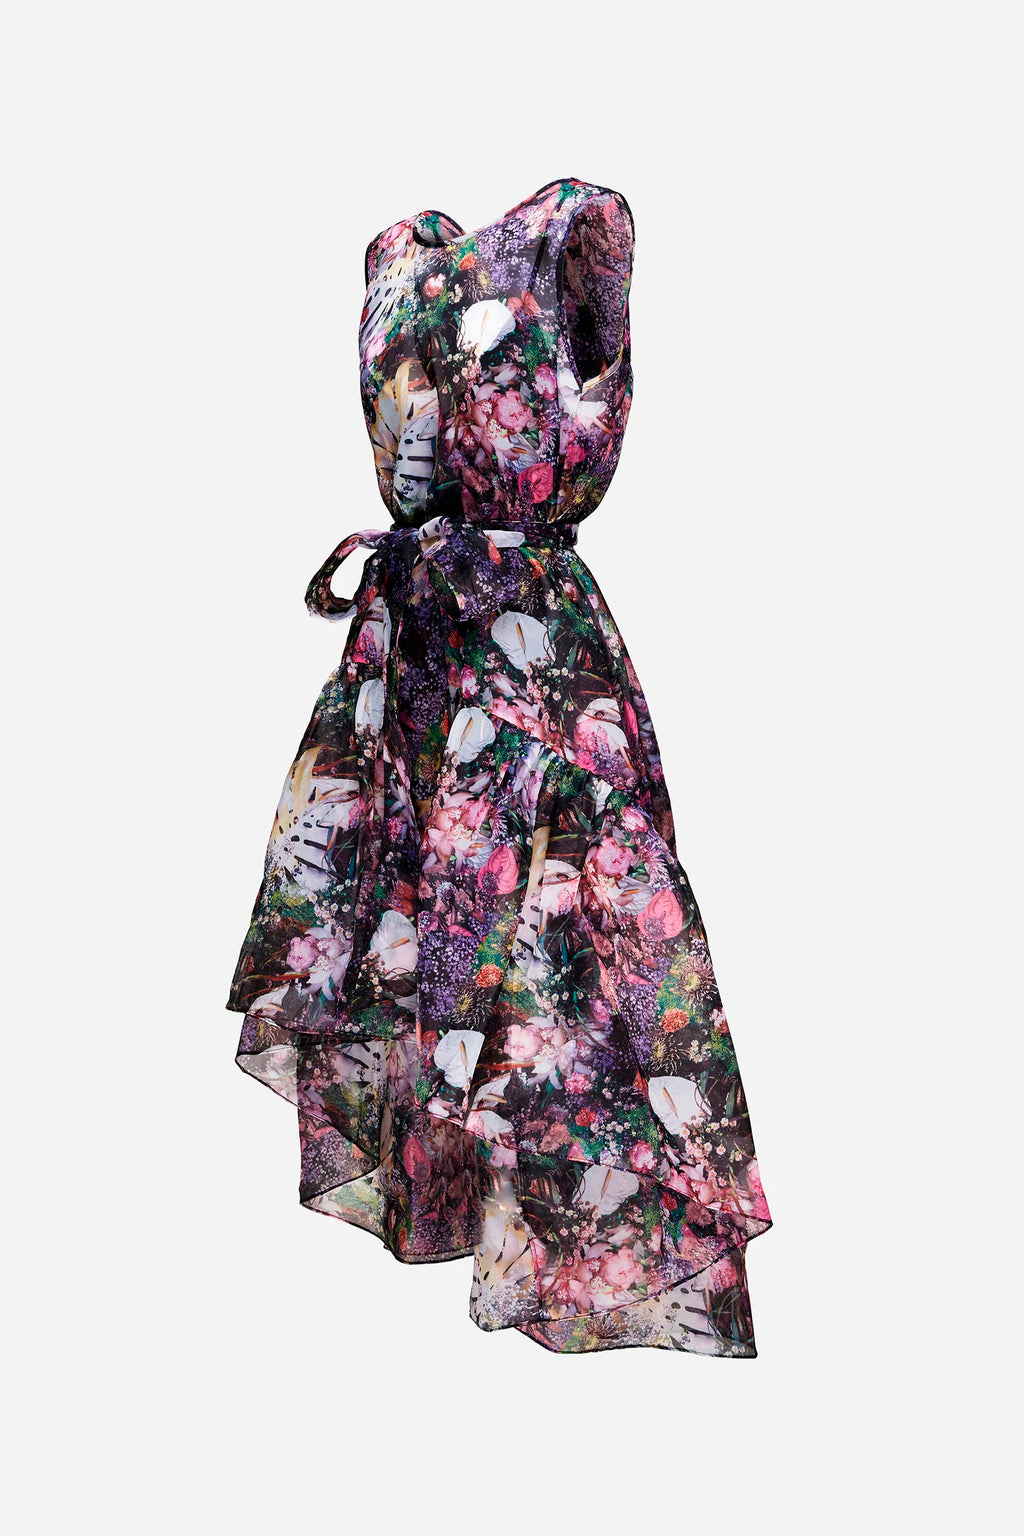 MONTMARTRE FLOWER DRESS